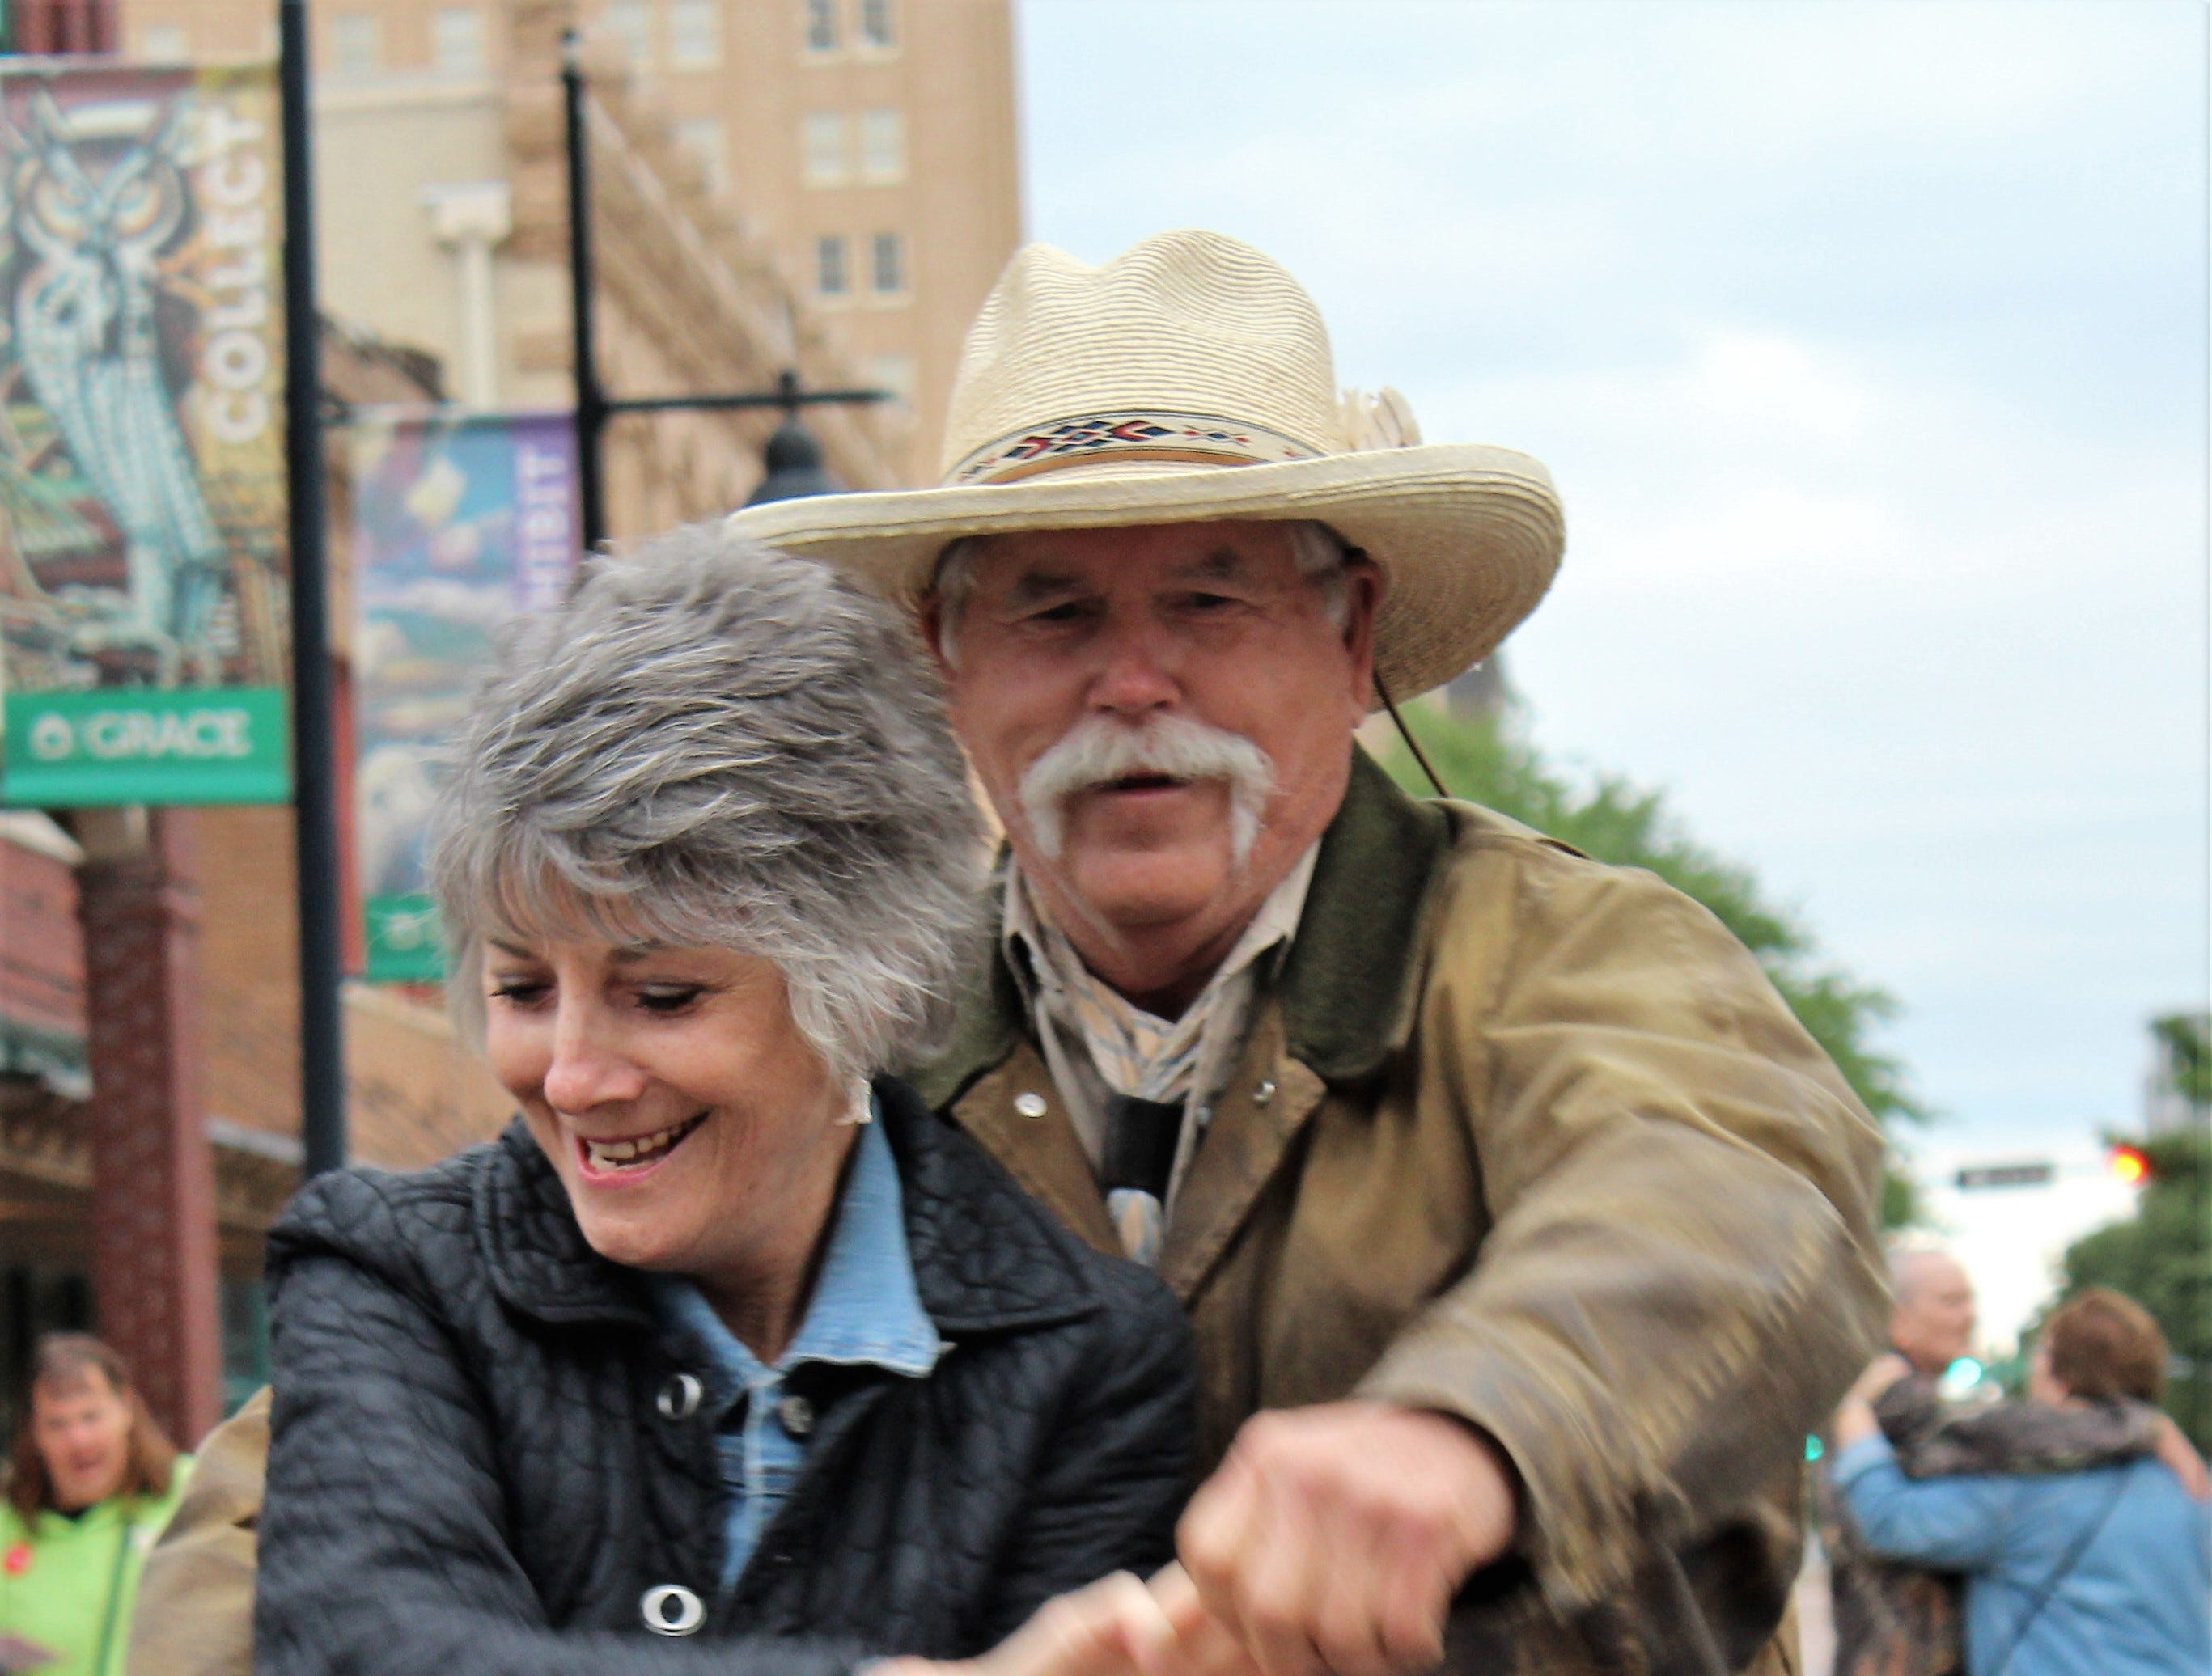 Loyd and Glenda Arthur, of Pryor, Oklahoma, whirl and twirl on the star at North First and Cypress streets Thursday evening after the Western Heritage Classic parade. May 9 2019